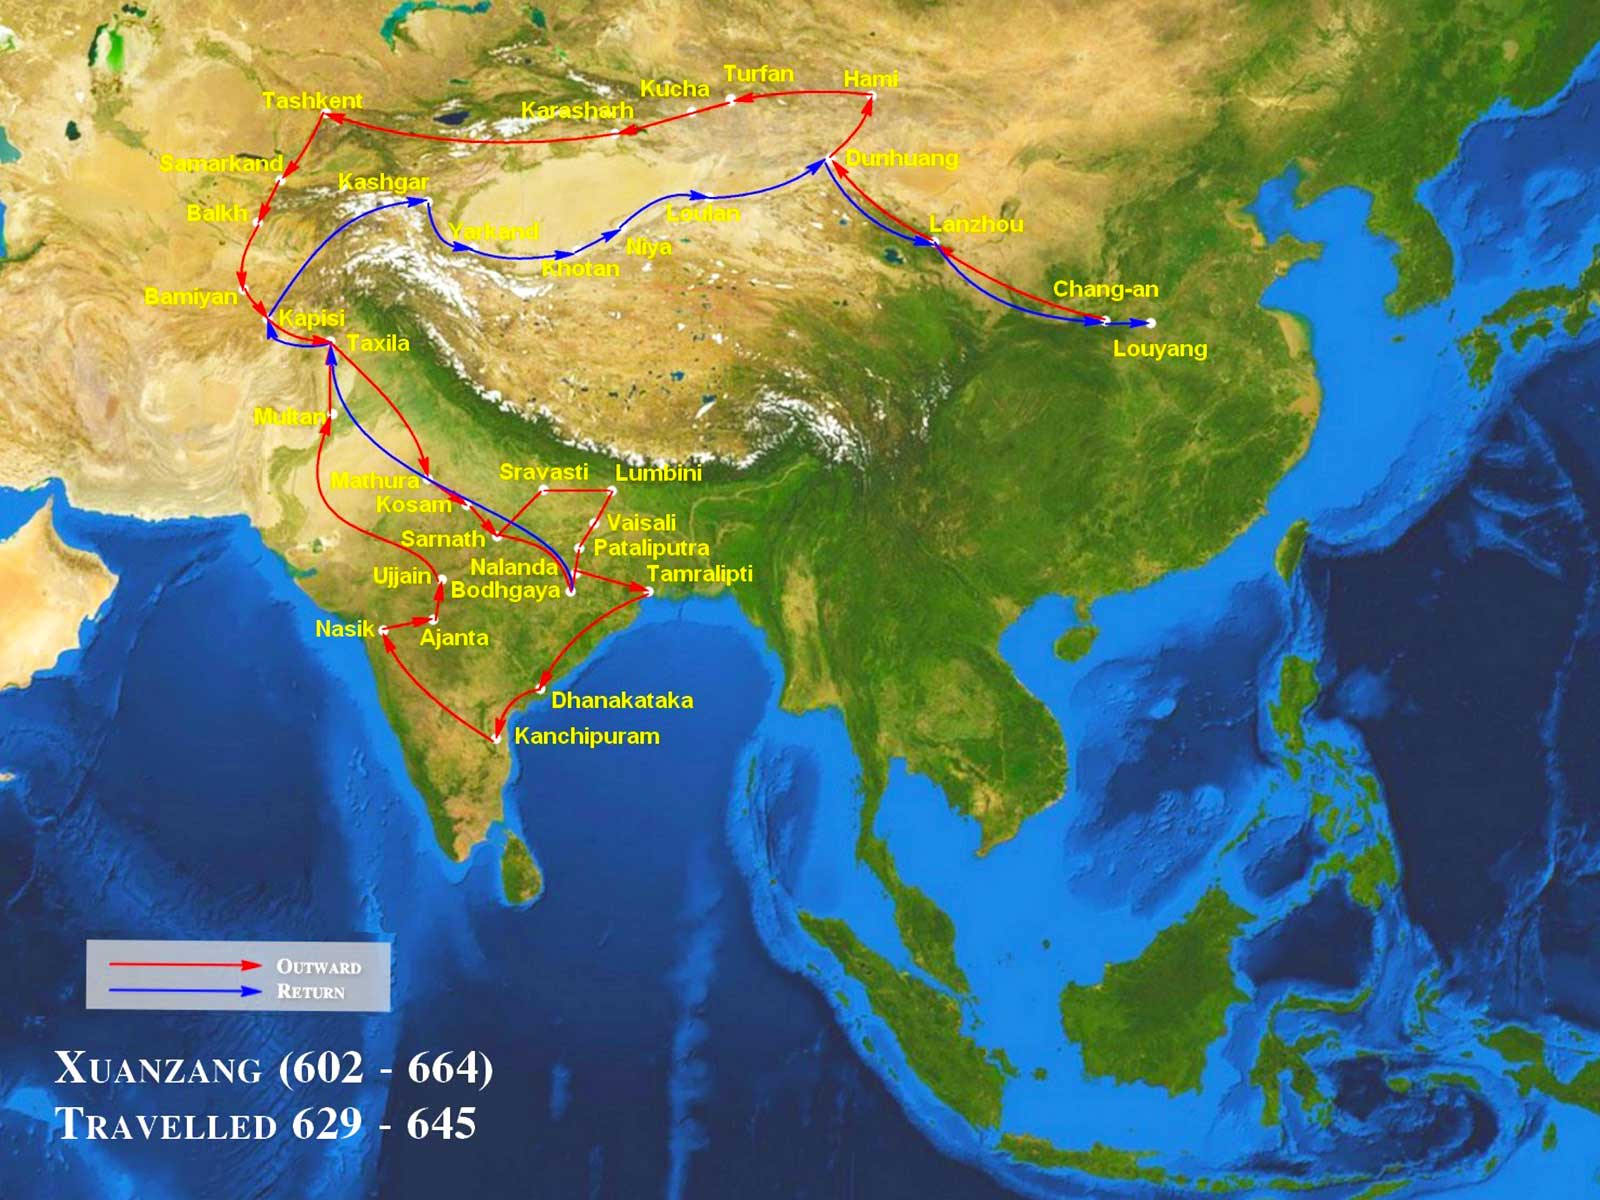 Xuanzang Travel Map - Silk Road Photo Journal - Steven Andrew Martin - China Culture University Study Tour